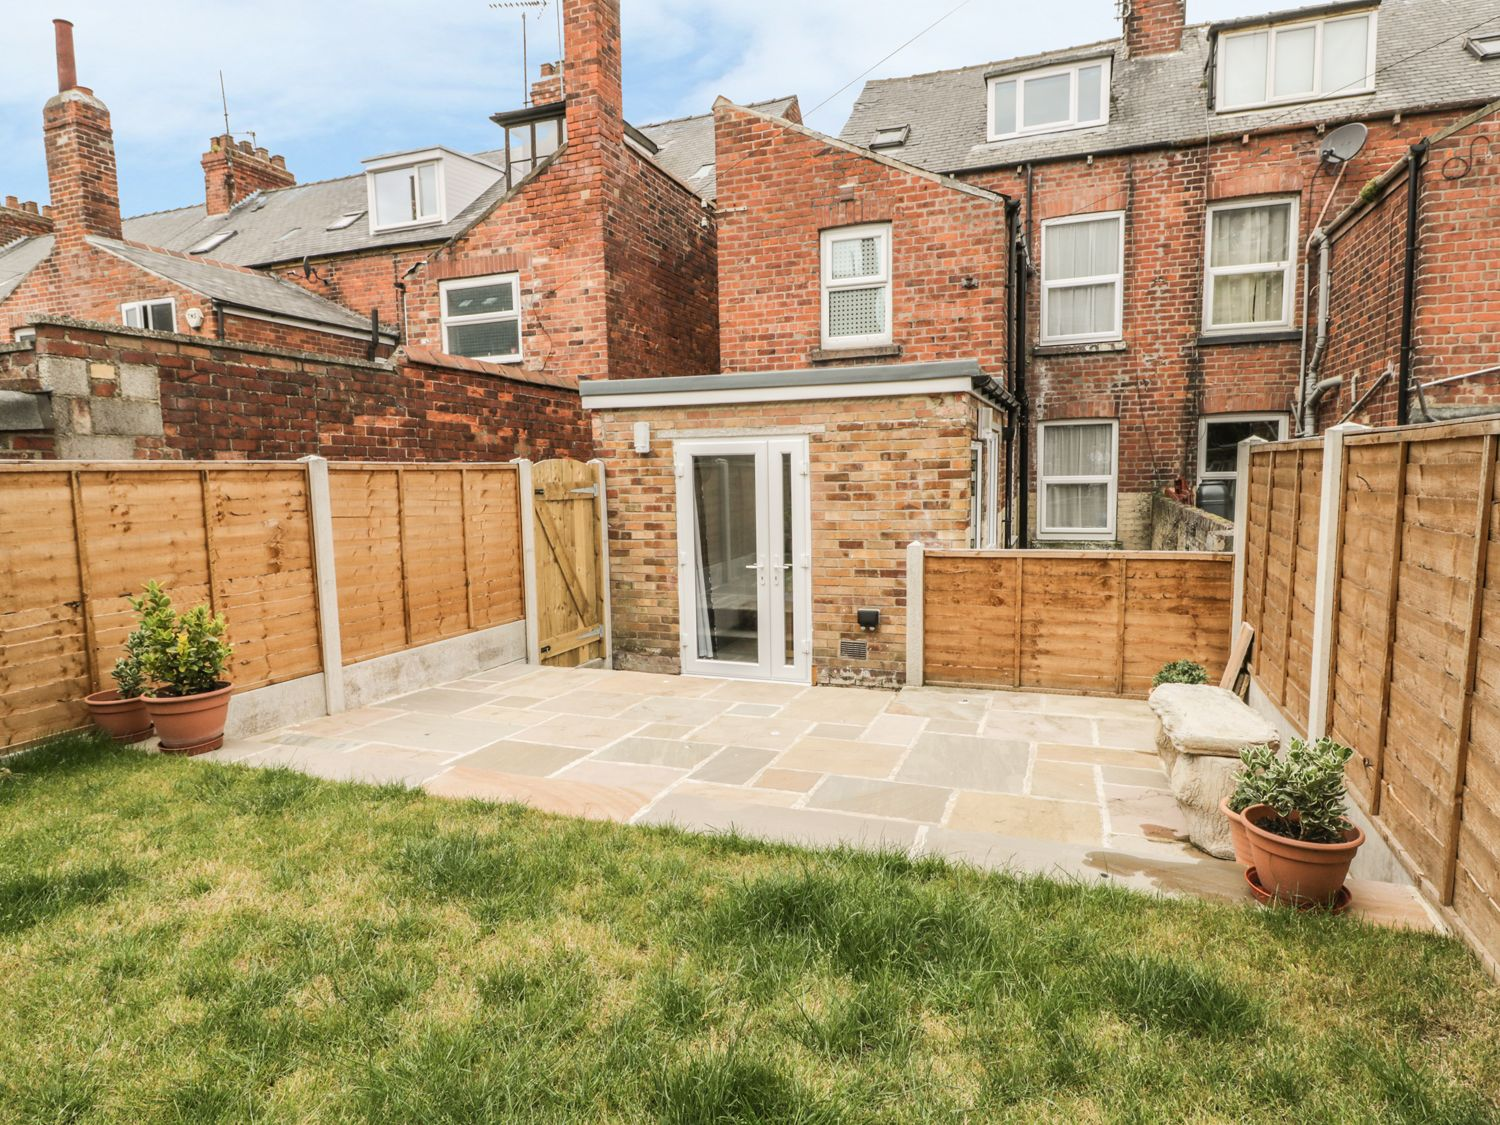 19 Holyrood Avenue - Whitby & North Yorkshire - 956000 - photo 1